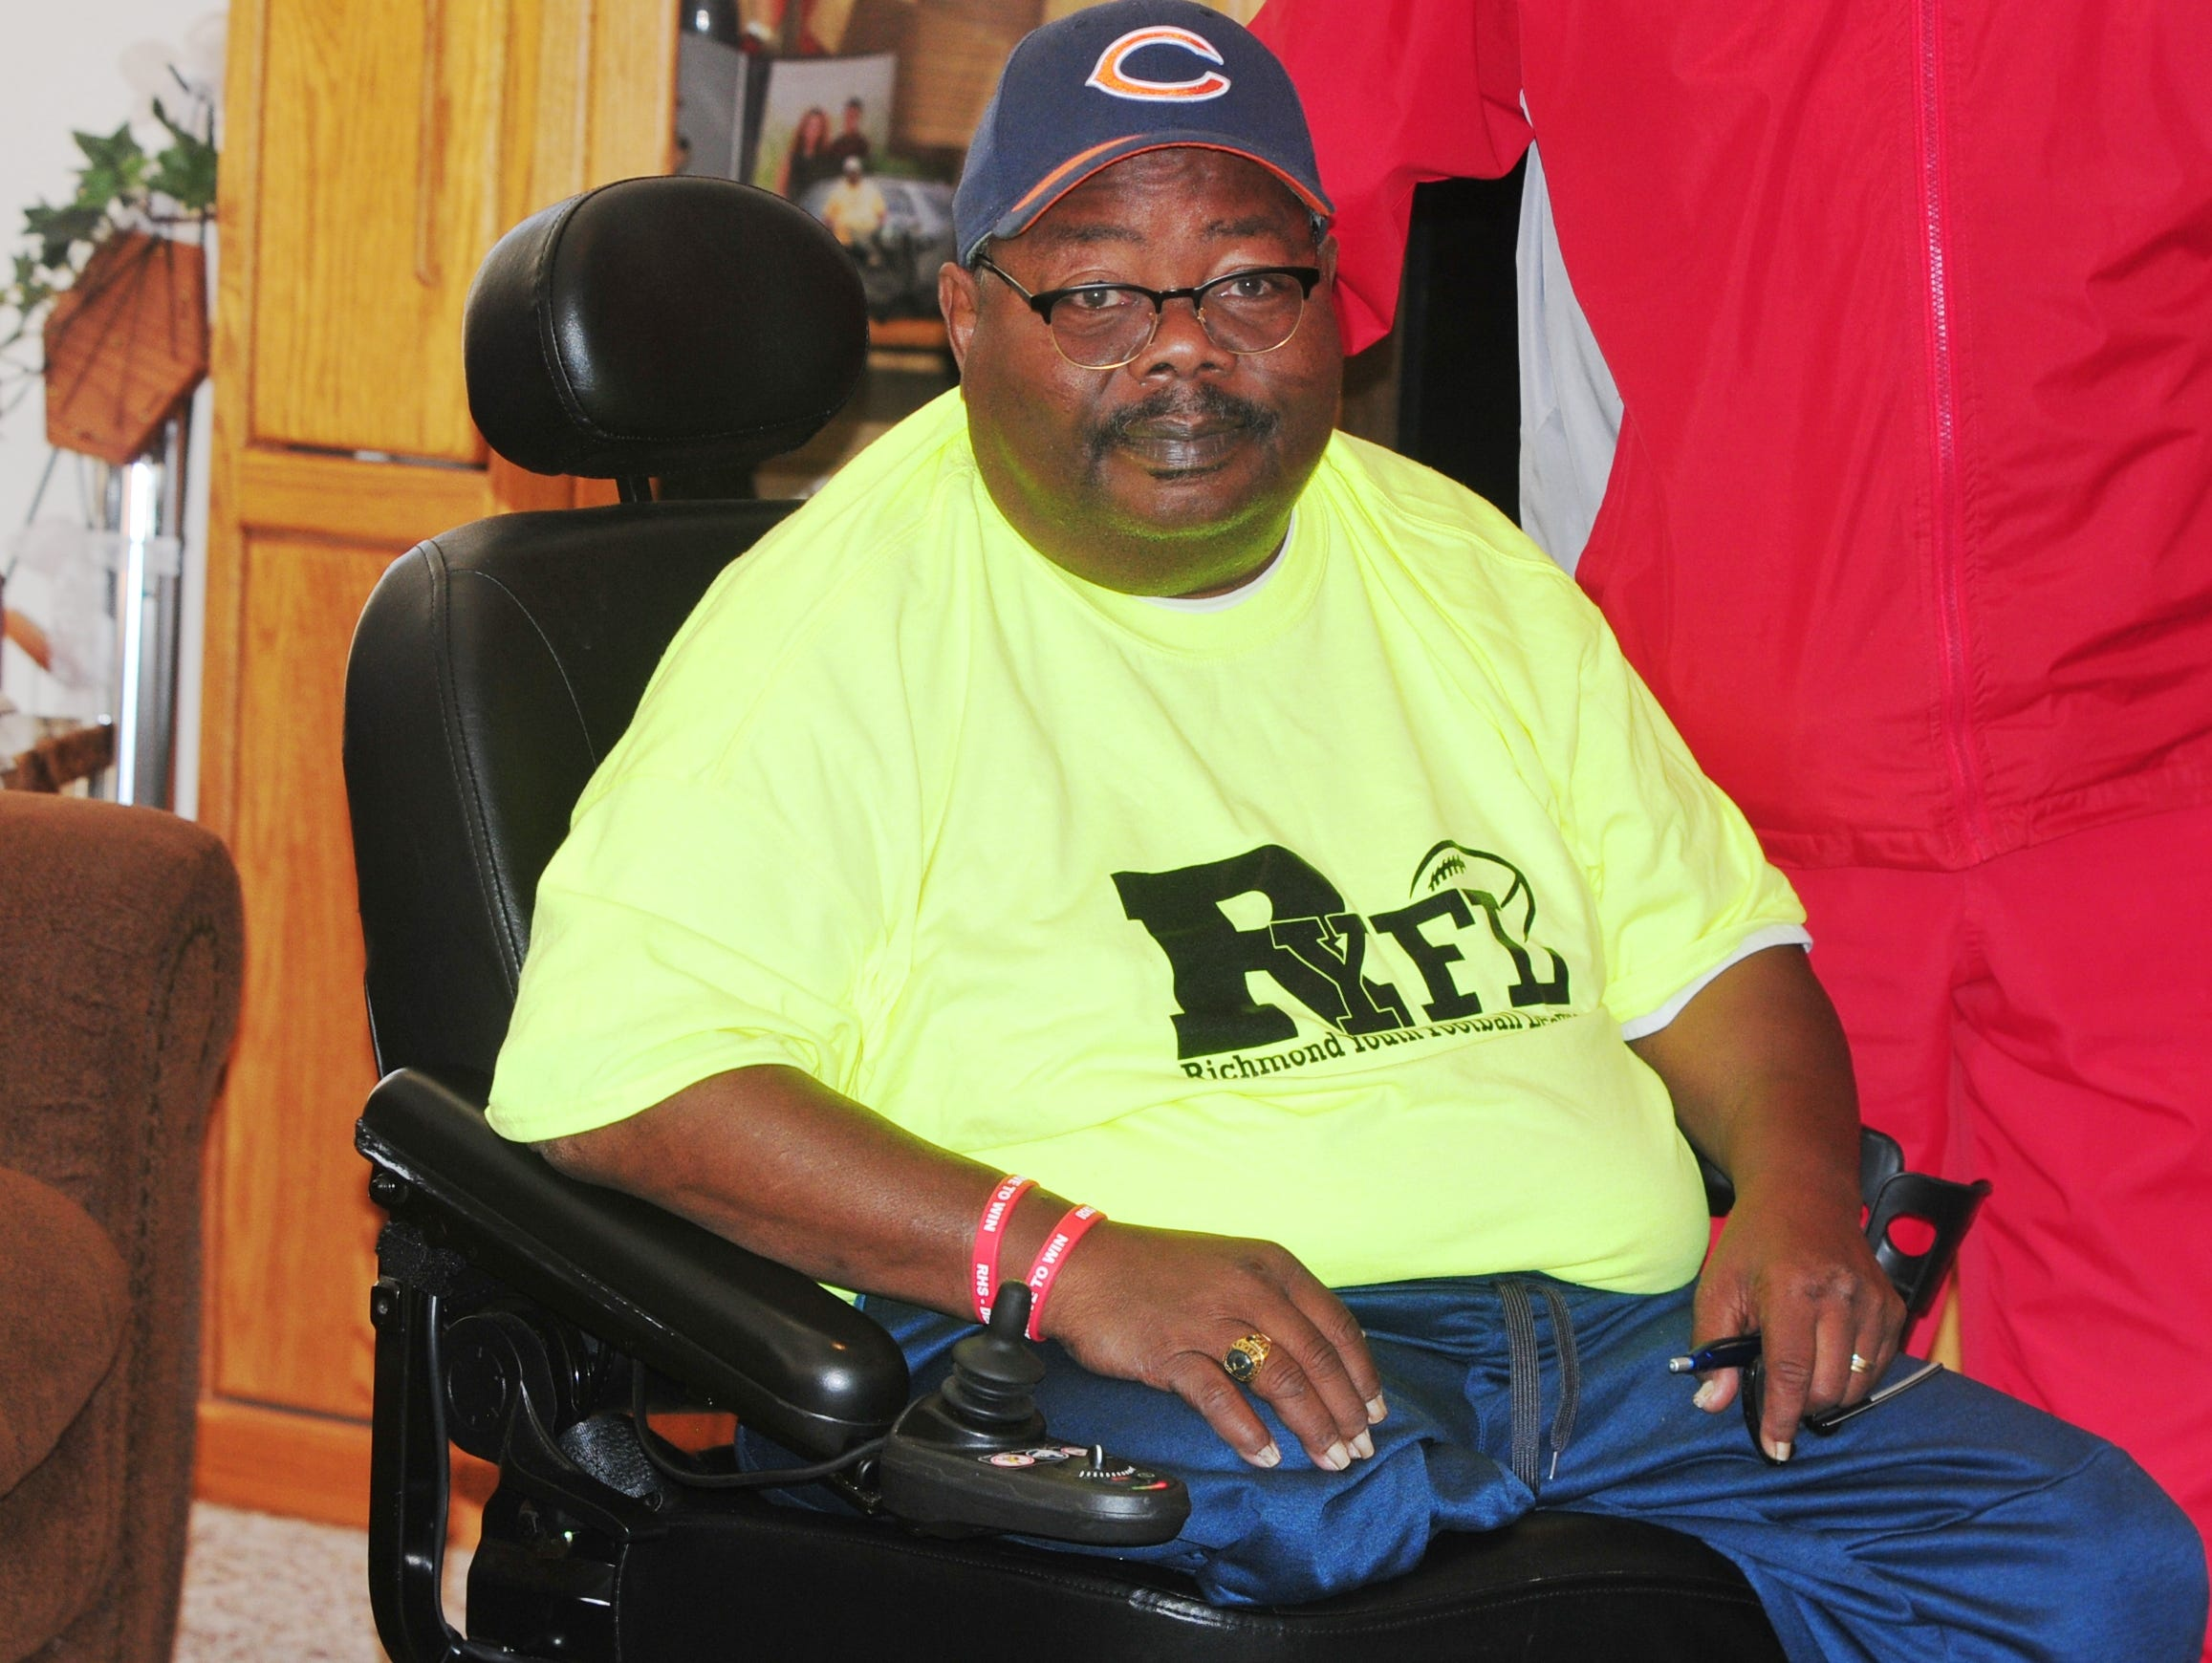 Work, faith and football: The story of Tommy Williams